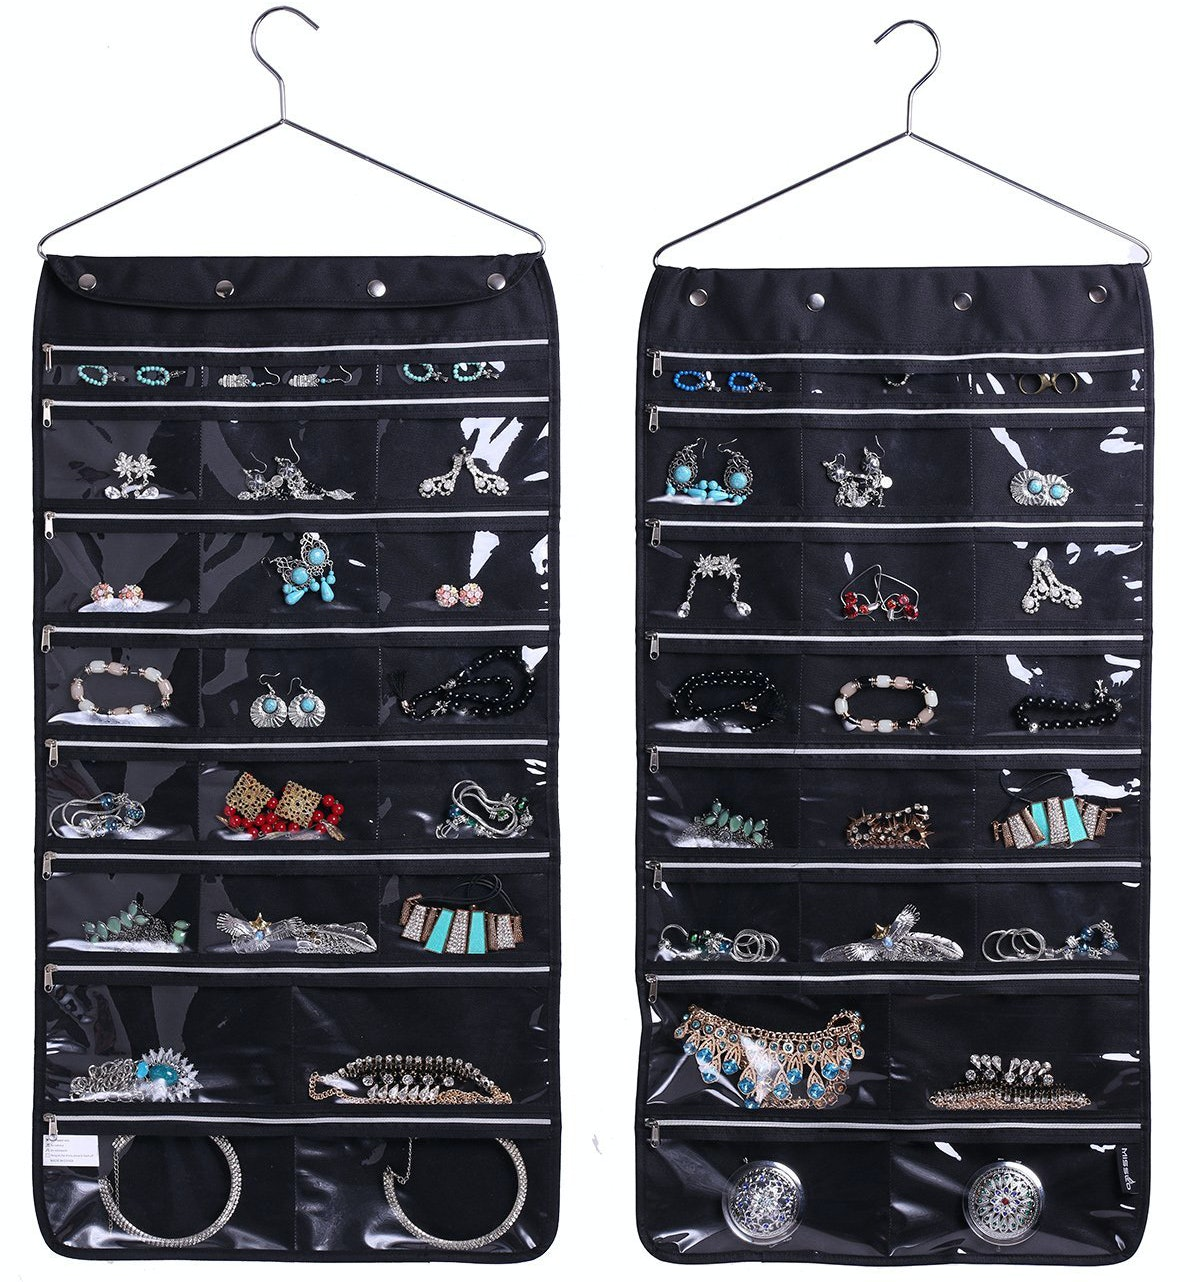 TRAVELING EARRING//JEWELRY 32 SLOT JEWELRY DISPLAY CASE